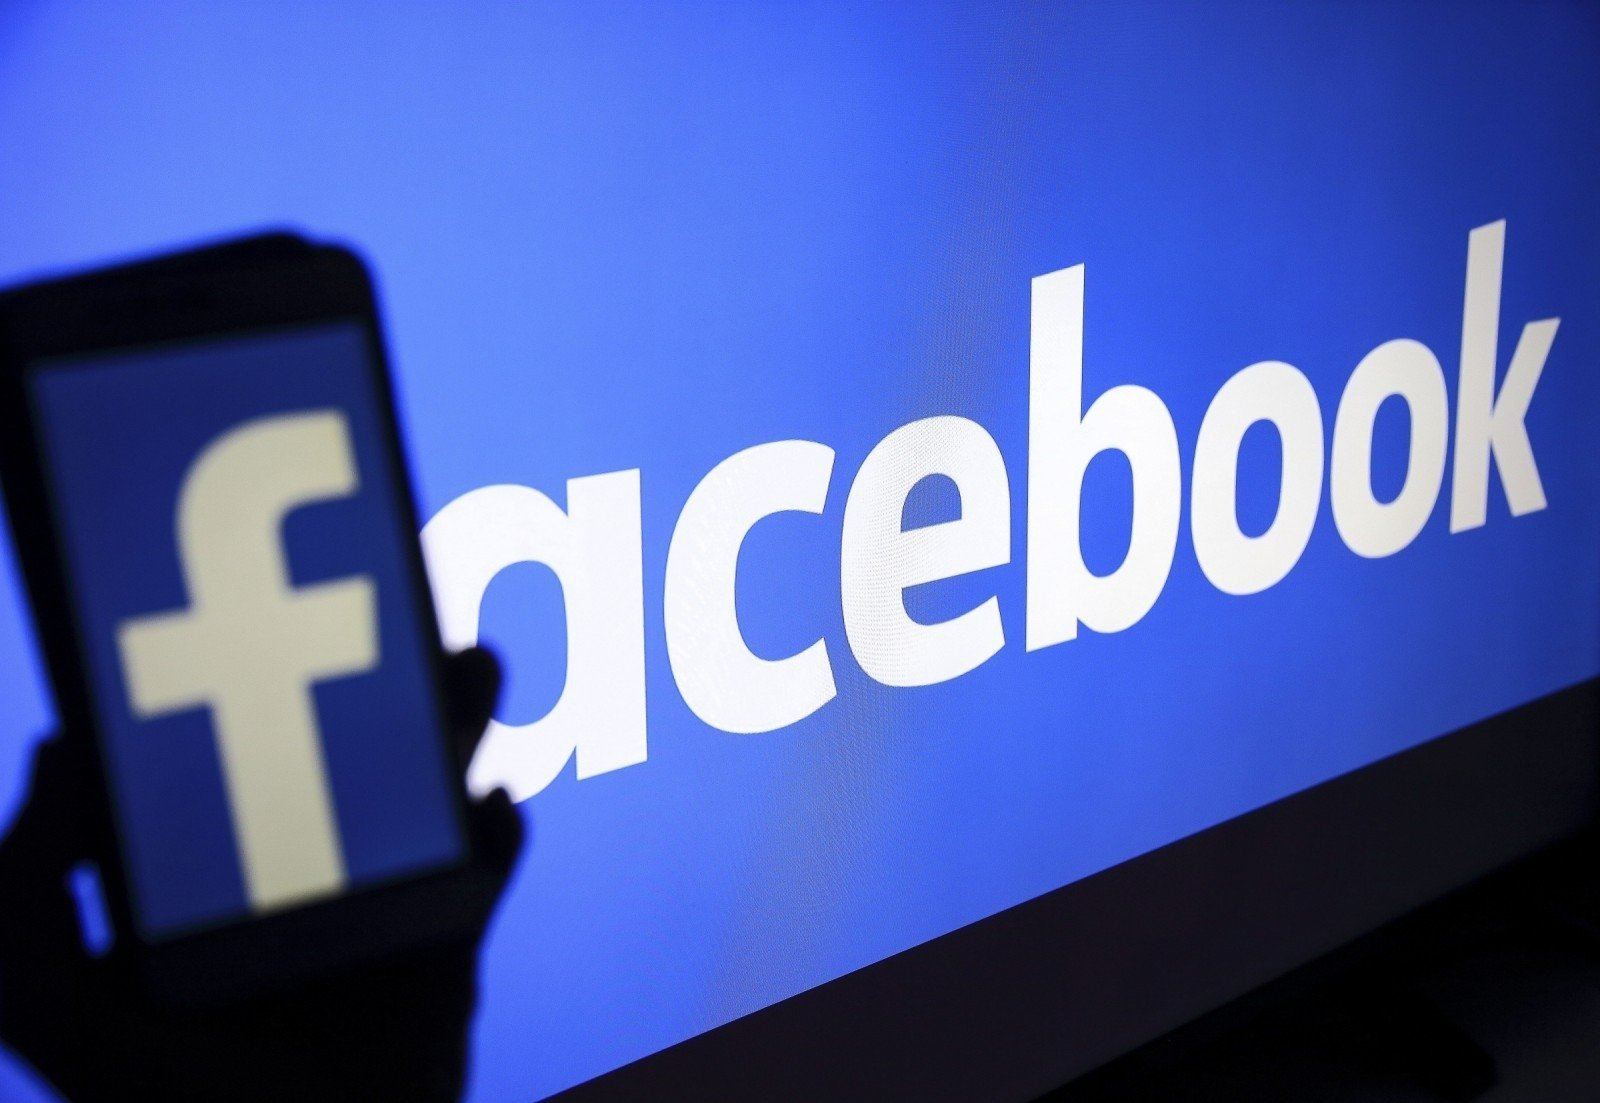 Facebook has banned media and Australians from sharing news